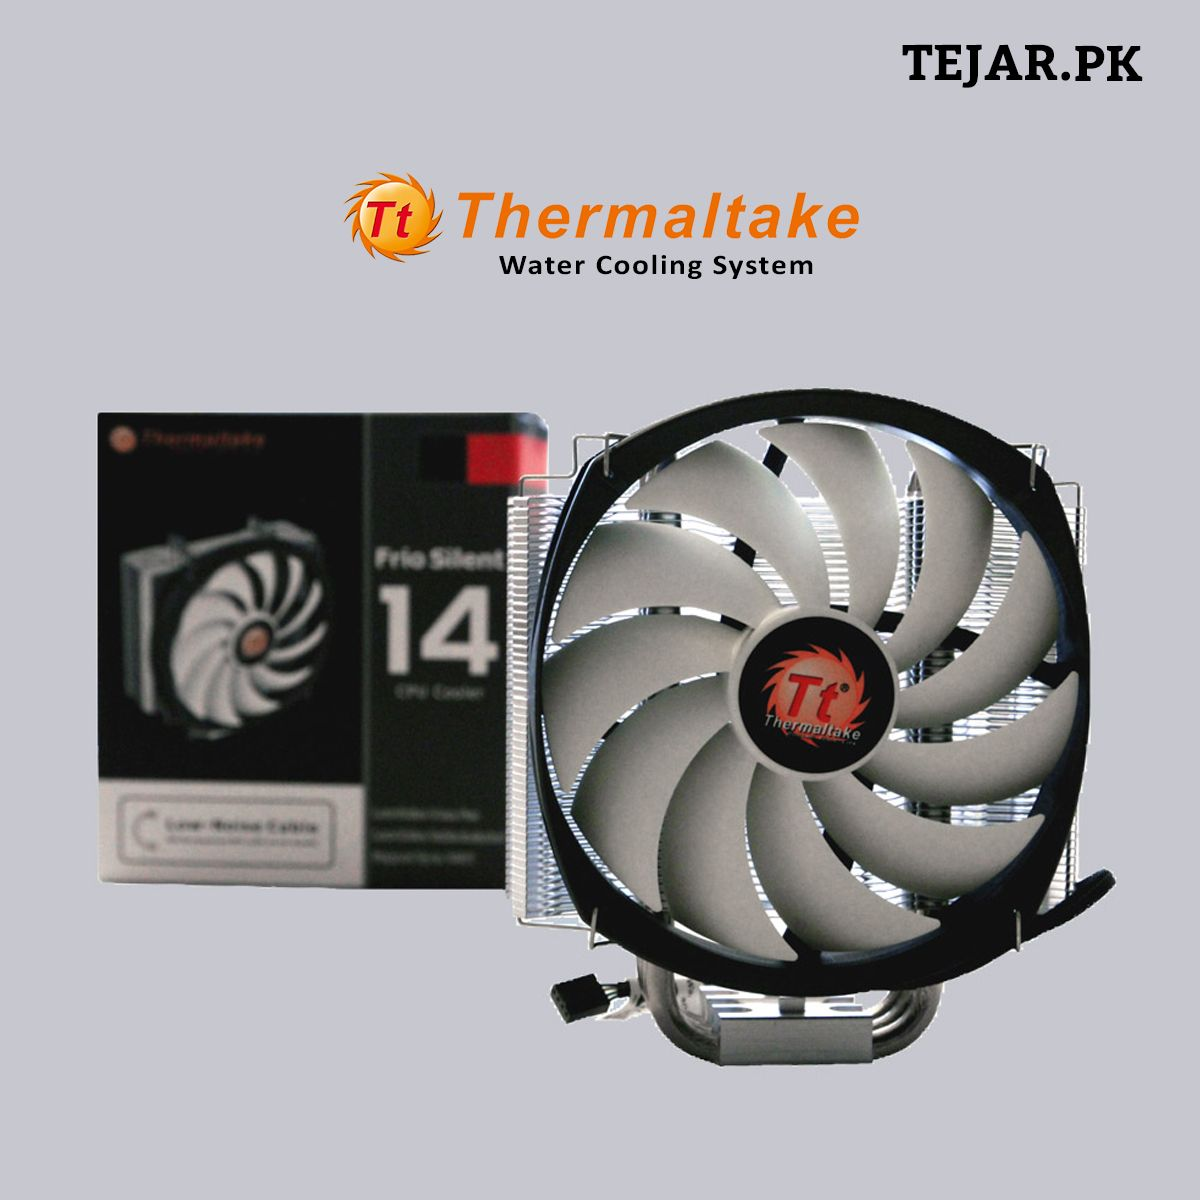 Thermaltake New Frio Silent Series Frio Silent 14 Another Cpu Cooler With Non Interference Cooling Design For The Buy Computer Water Cooling Cooling System